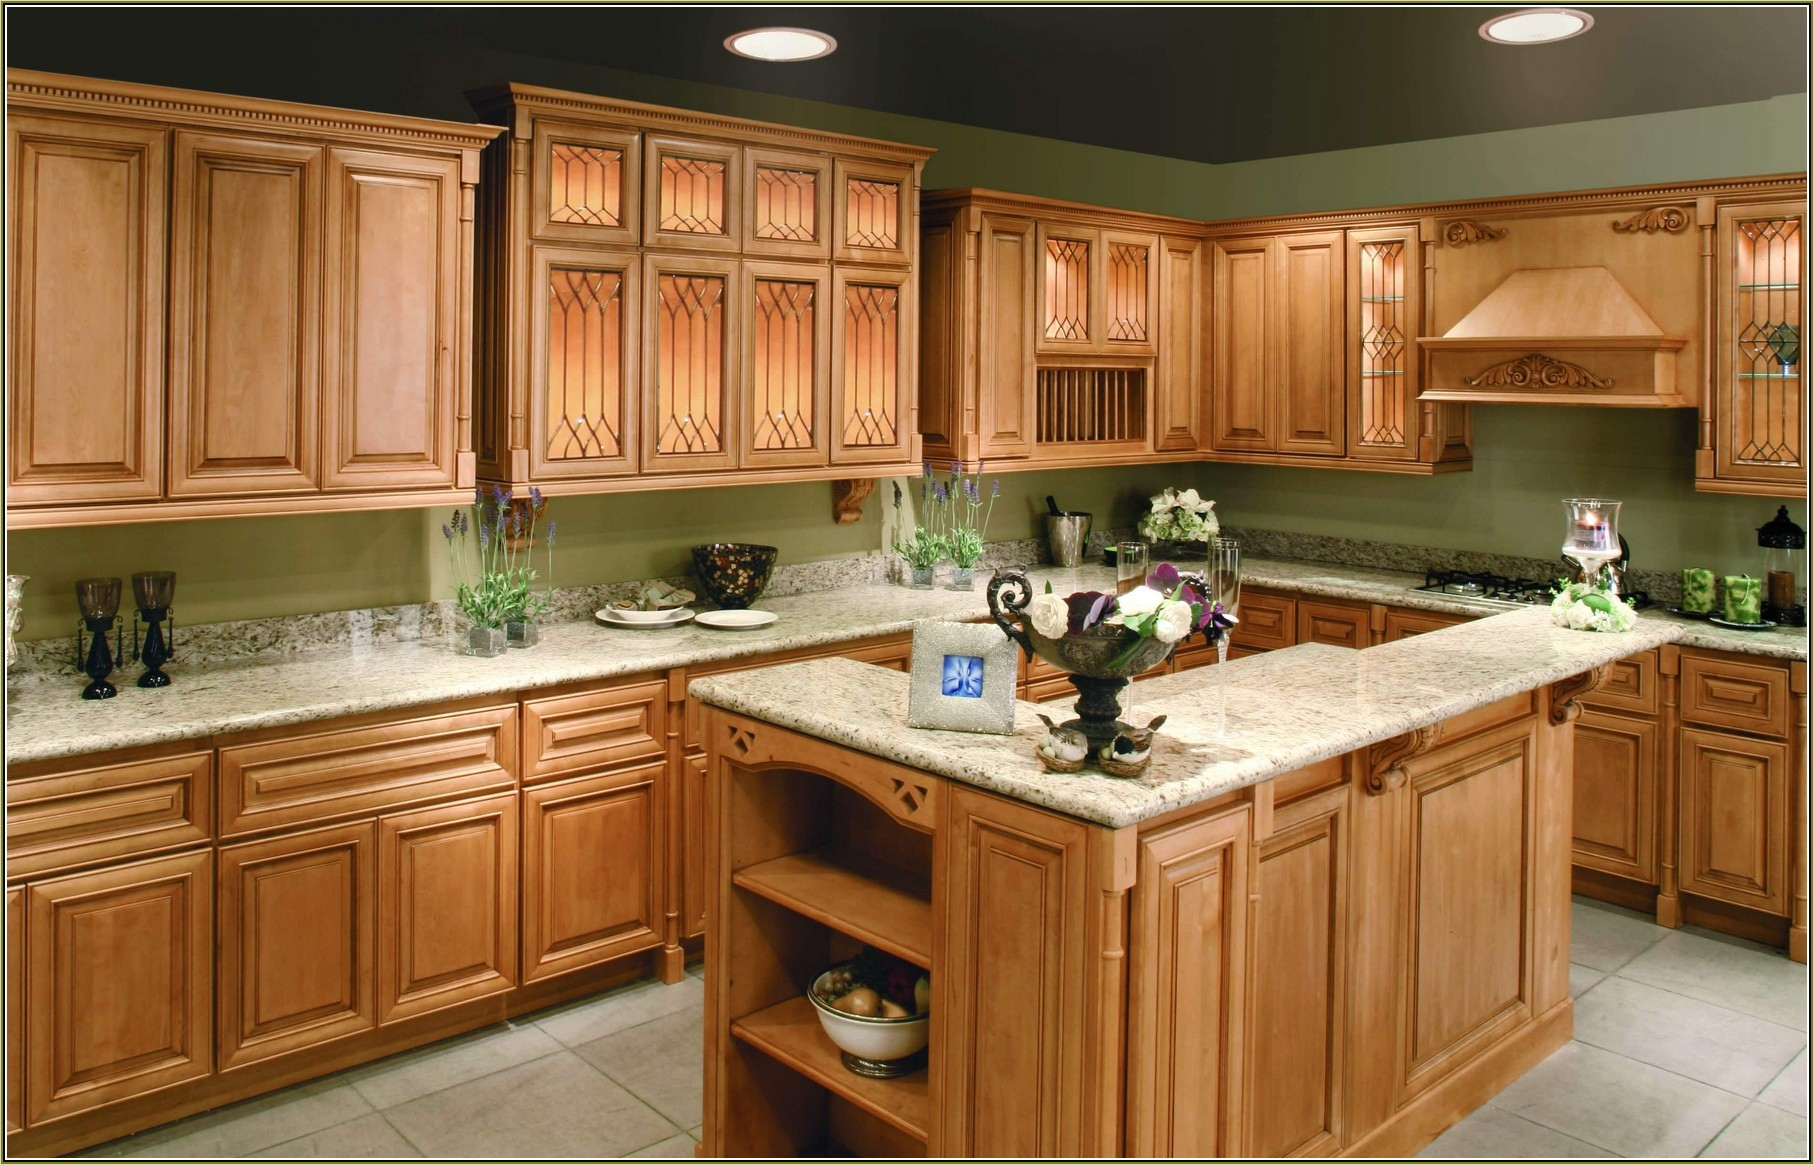 41 Attractive Kitchen with Maple Cabinets Color Ideas ... on Best Countertop Color For Maple Cabinets  id=90642